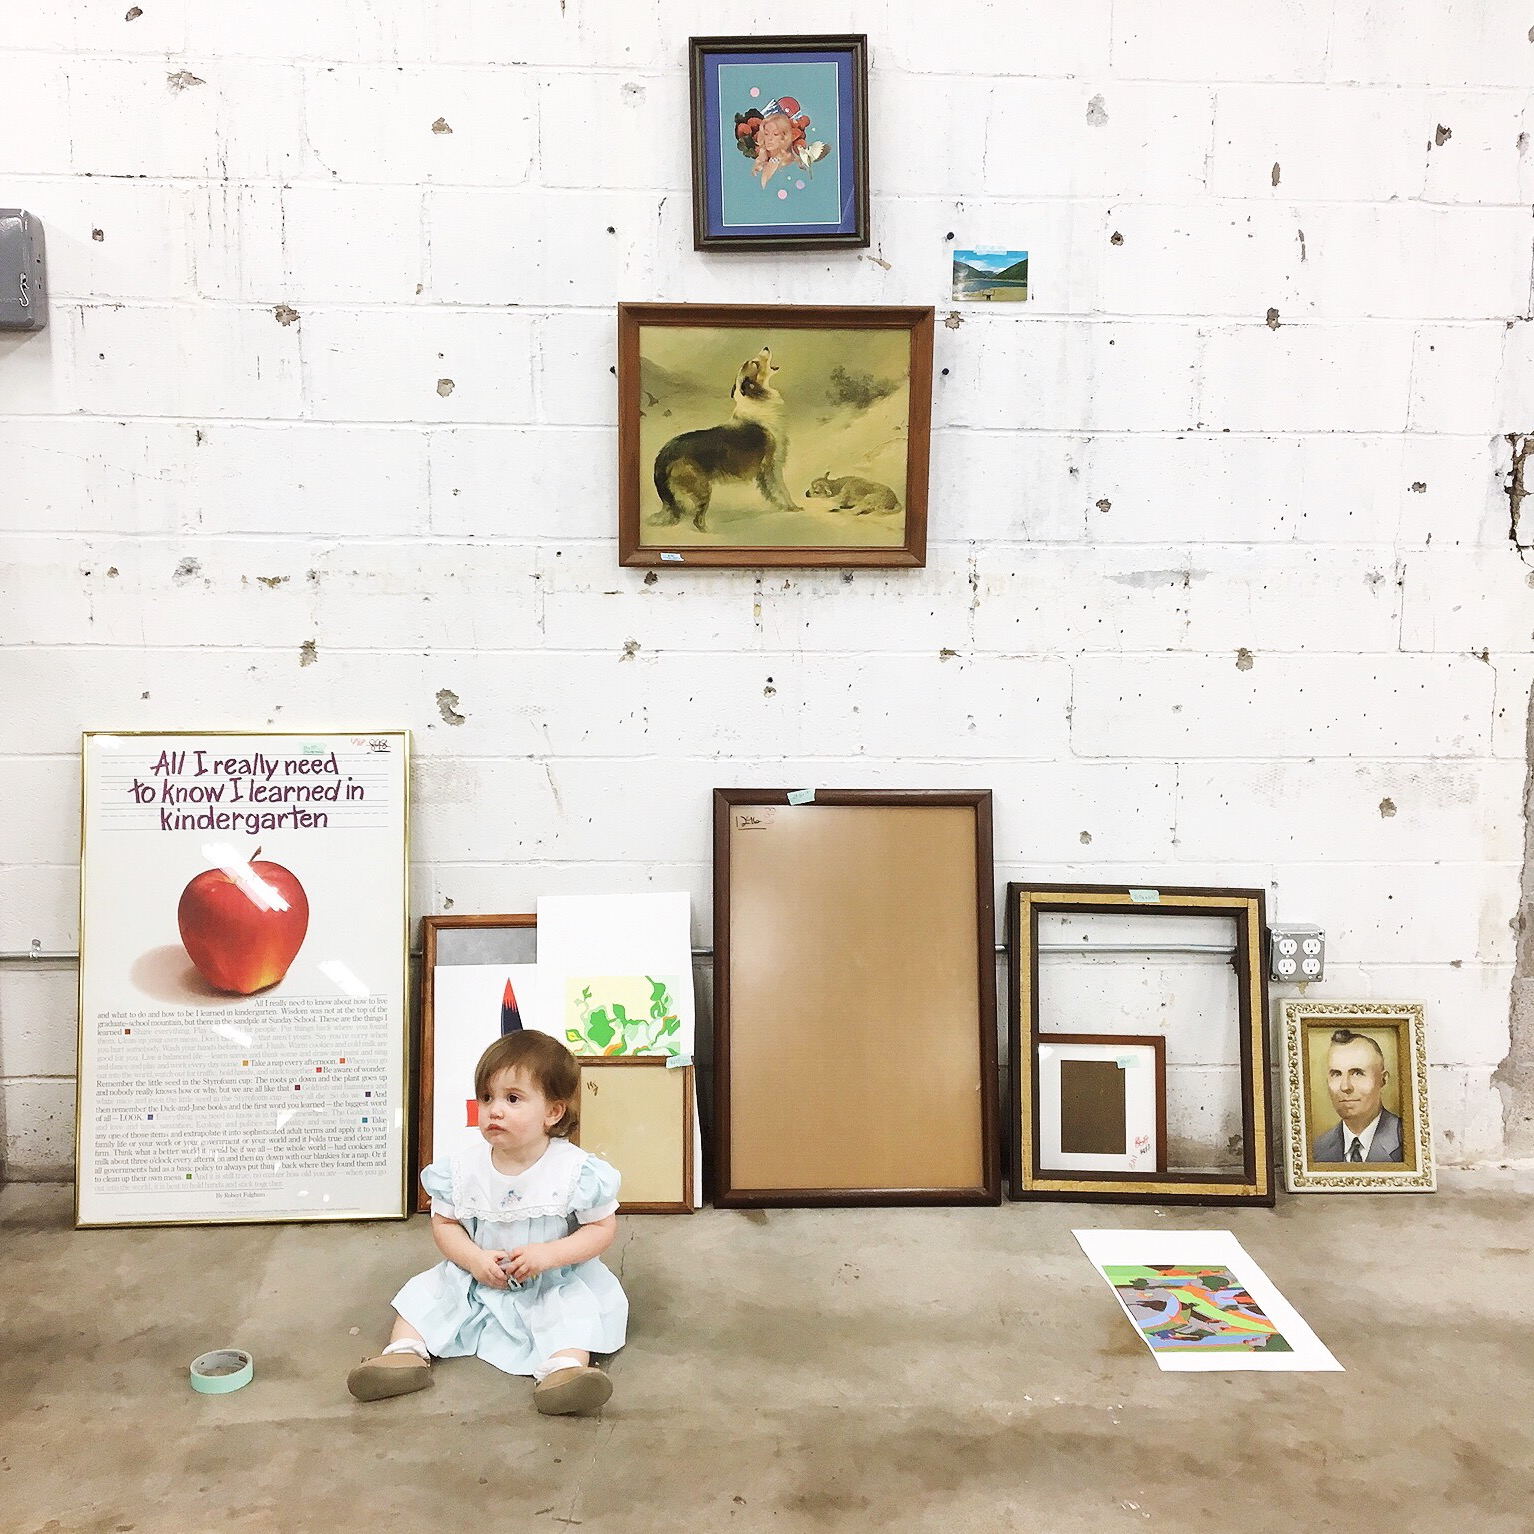 """Look at all those thrift store frames! It seems like a crime against childhood to take that """"All I need to know I learned in kindergarten"""" poster out of its frame. You should figure out what day the half-price days are, so the frames are even cheaper!"""